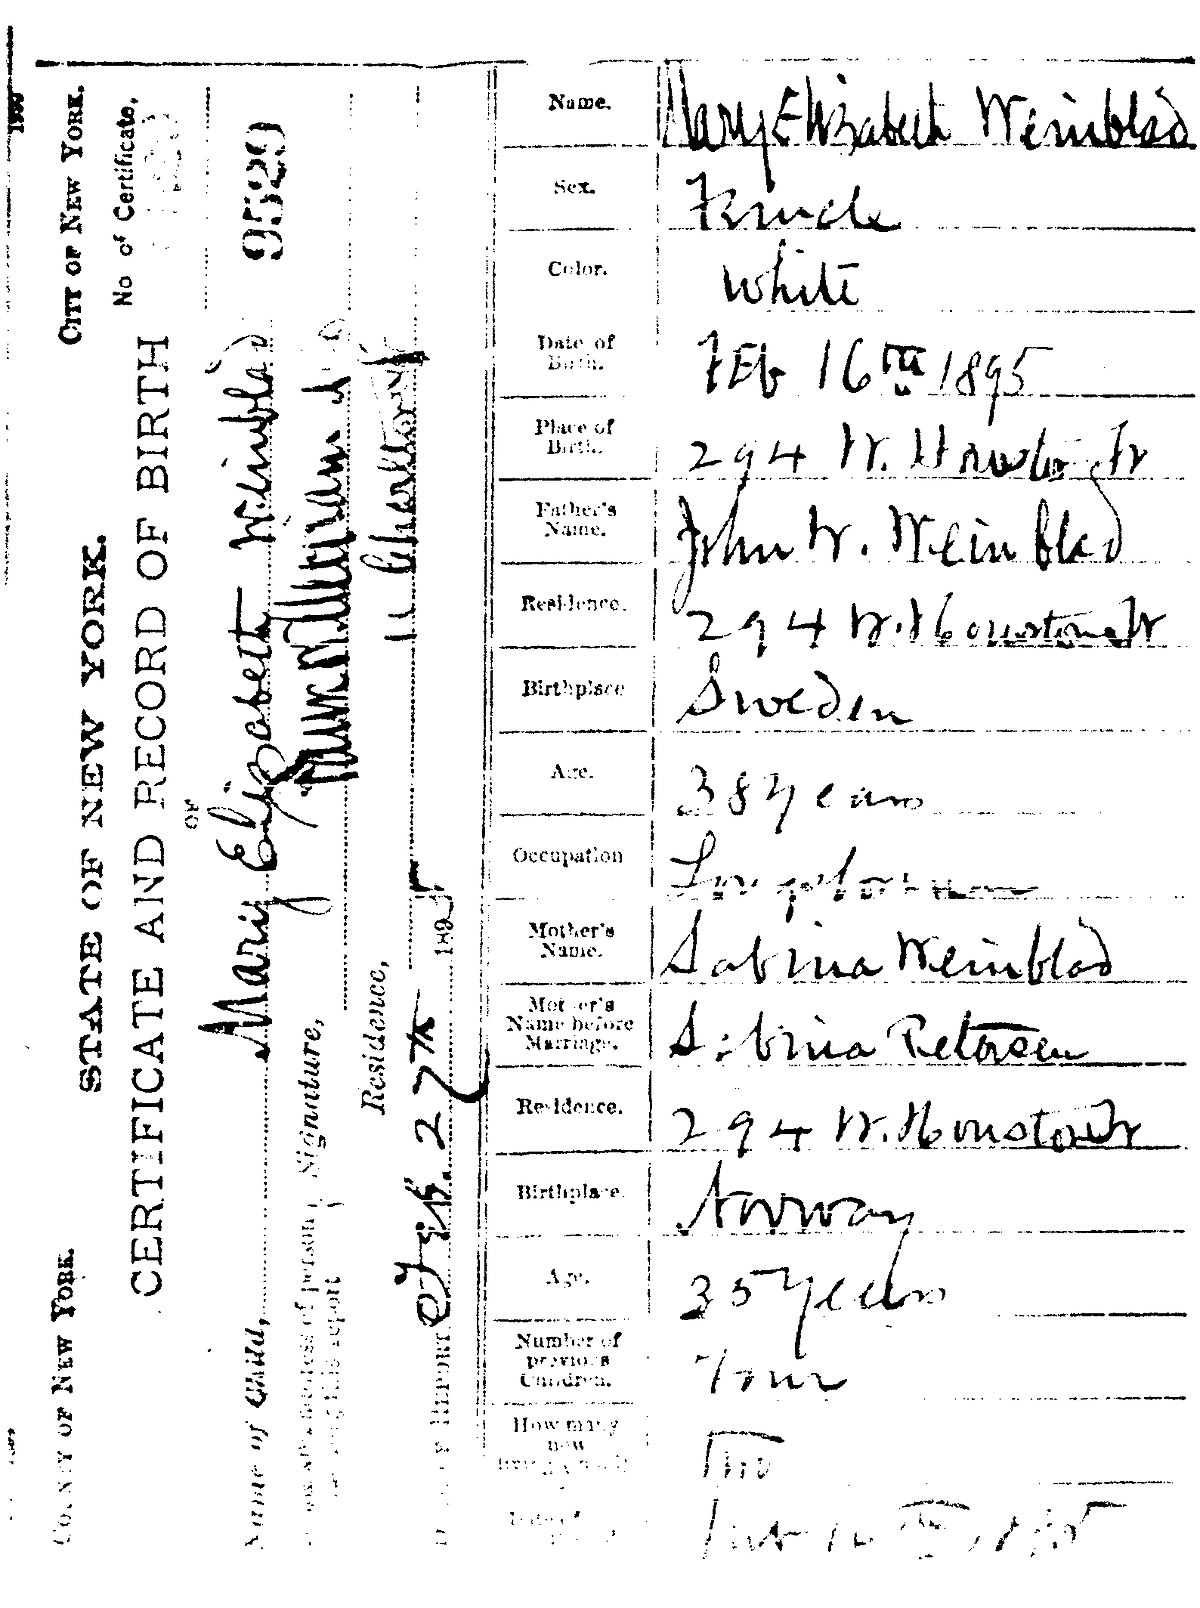 Birth certificate wikipedia 1betcityfo Image collections